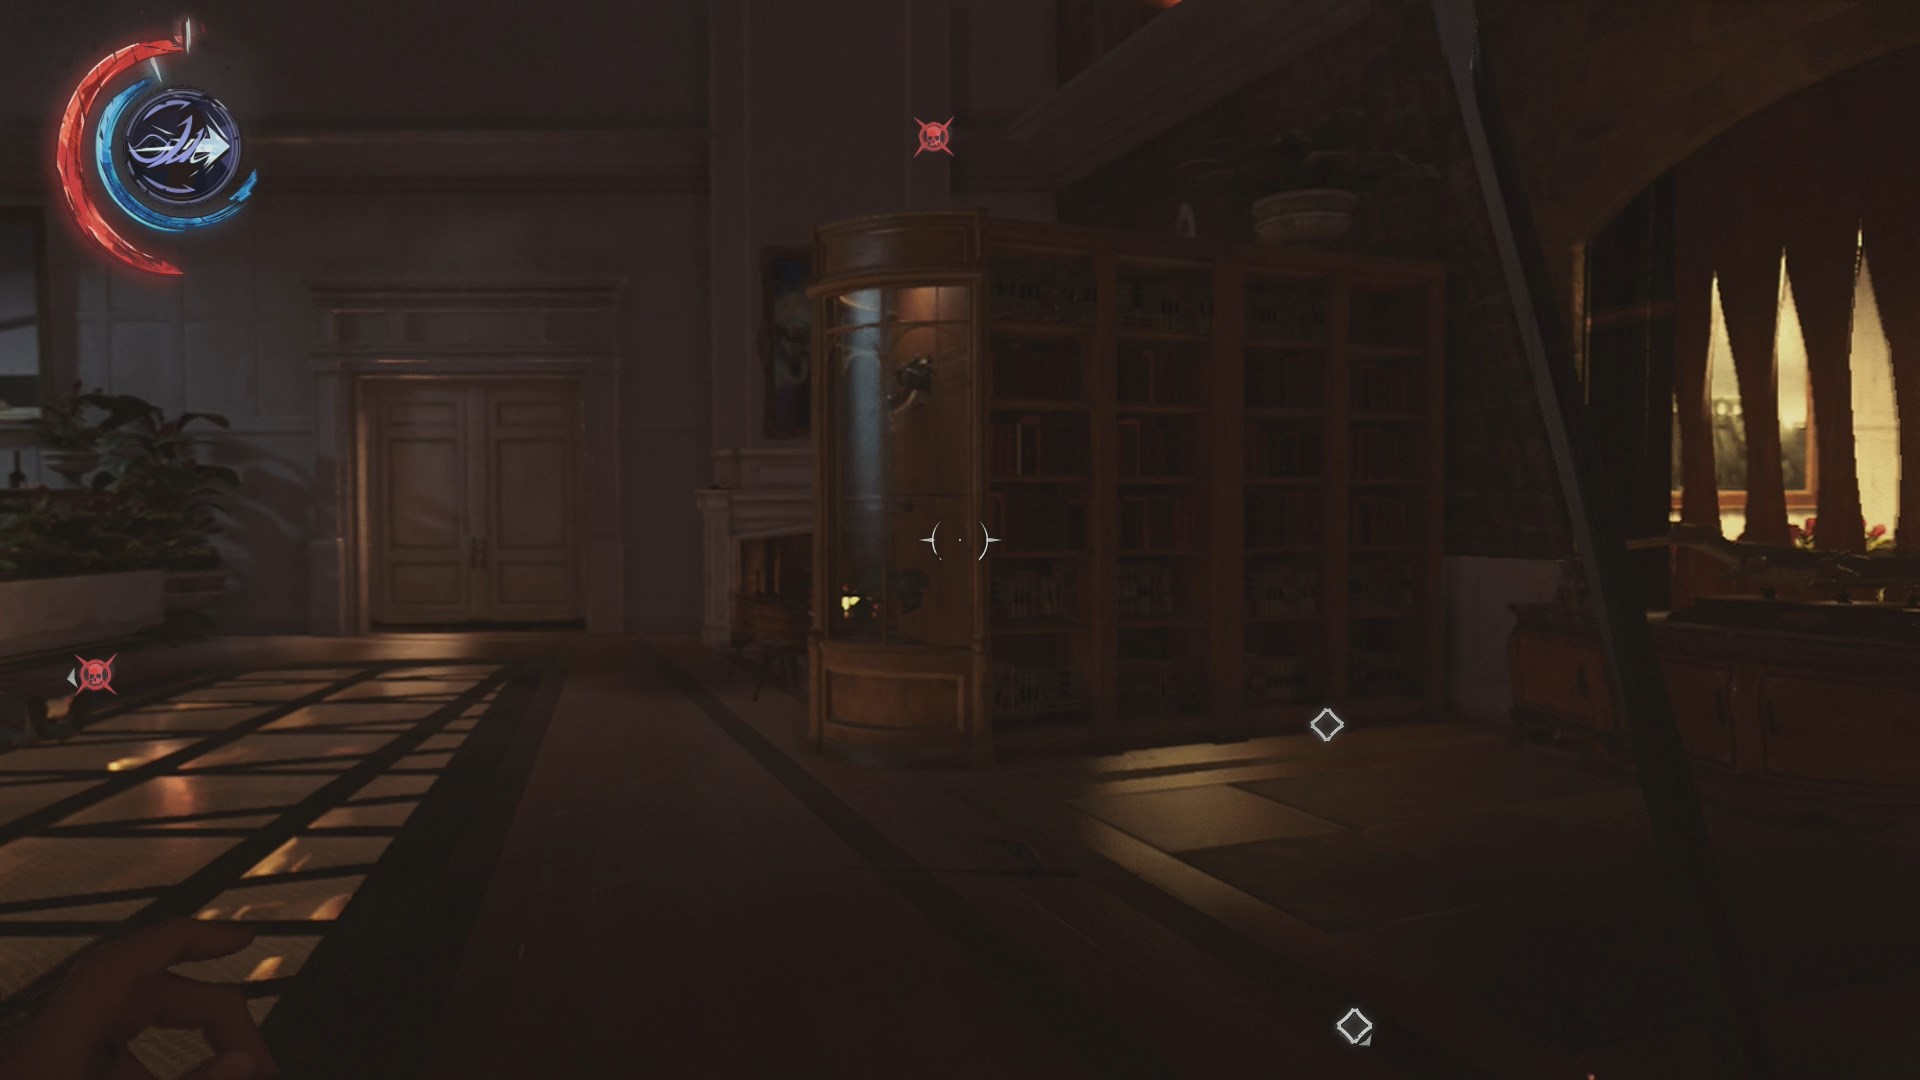 dishonored 2 mission 8 shopkeepers key